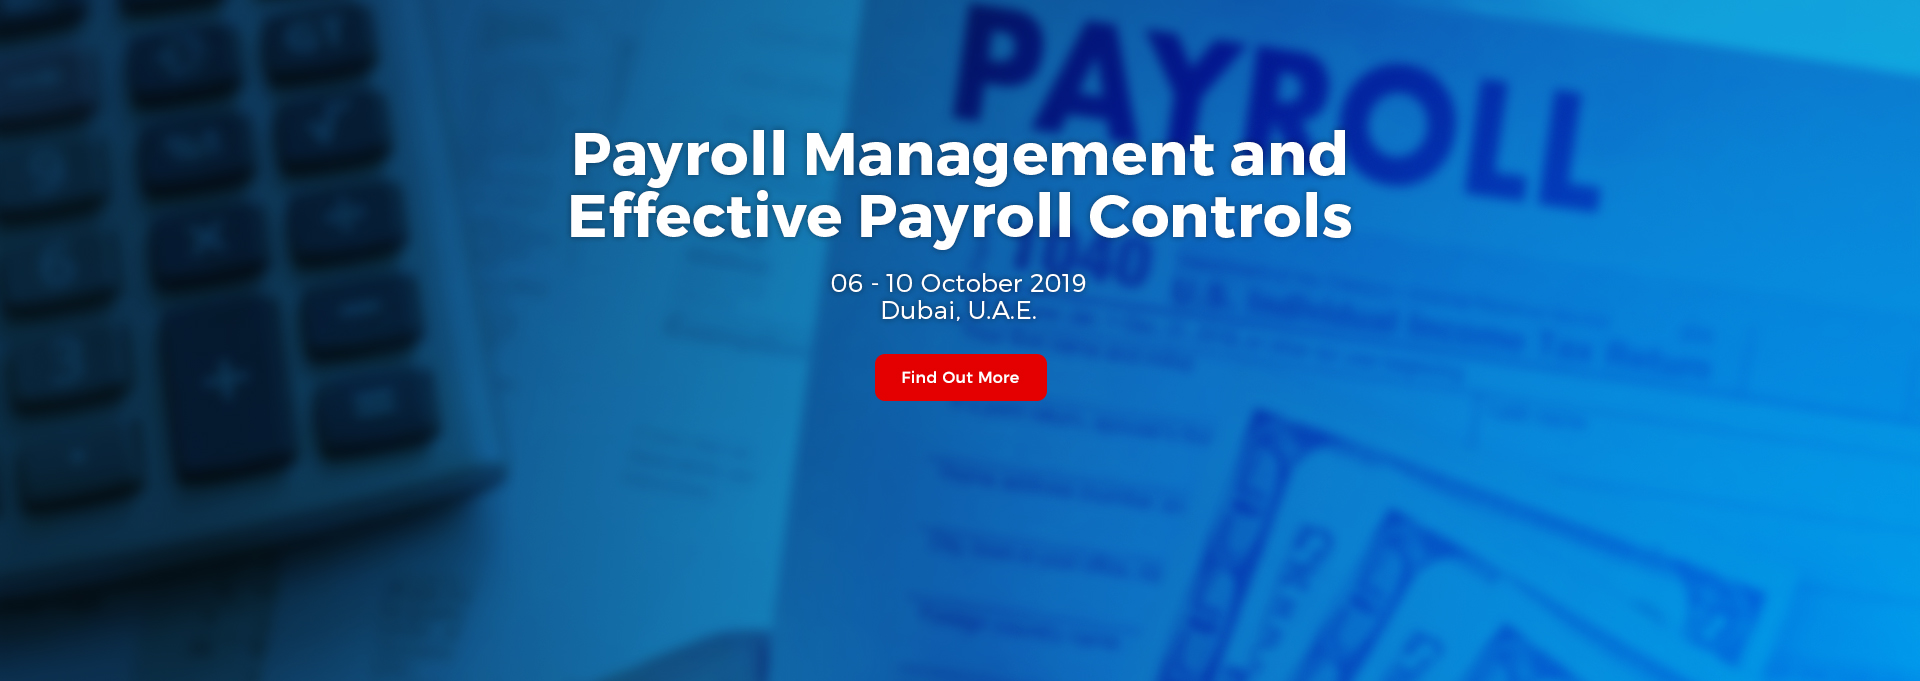 FI218 Payroll Management and Effective Payroll Controls